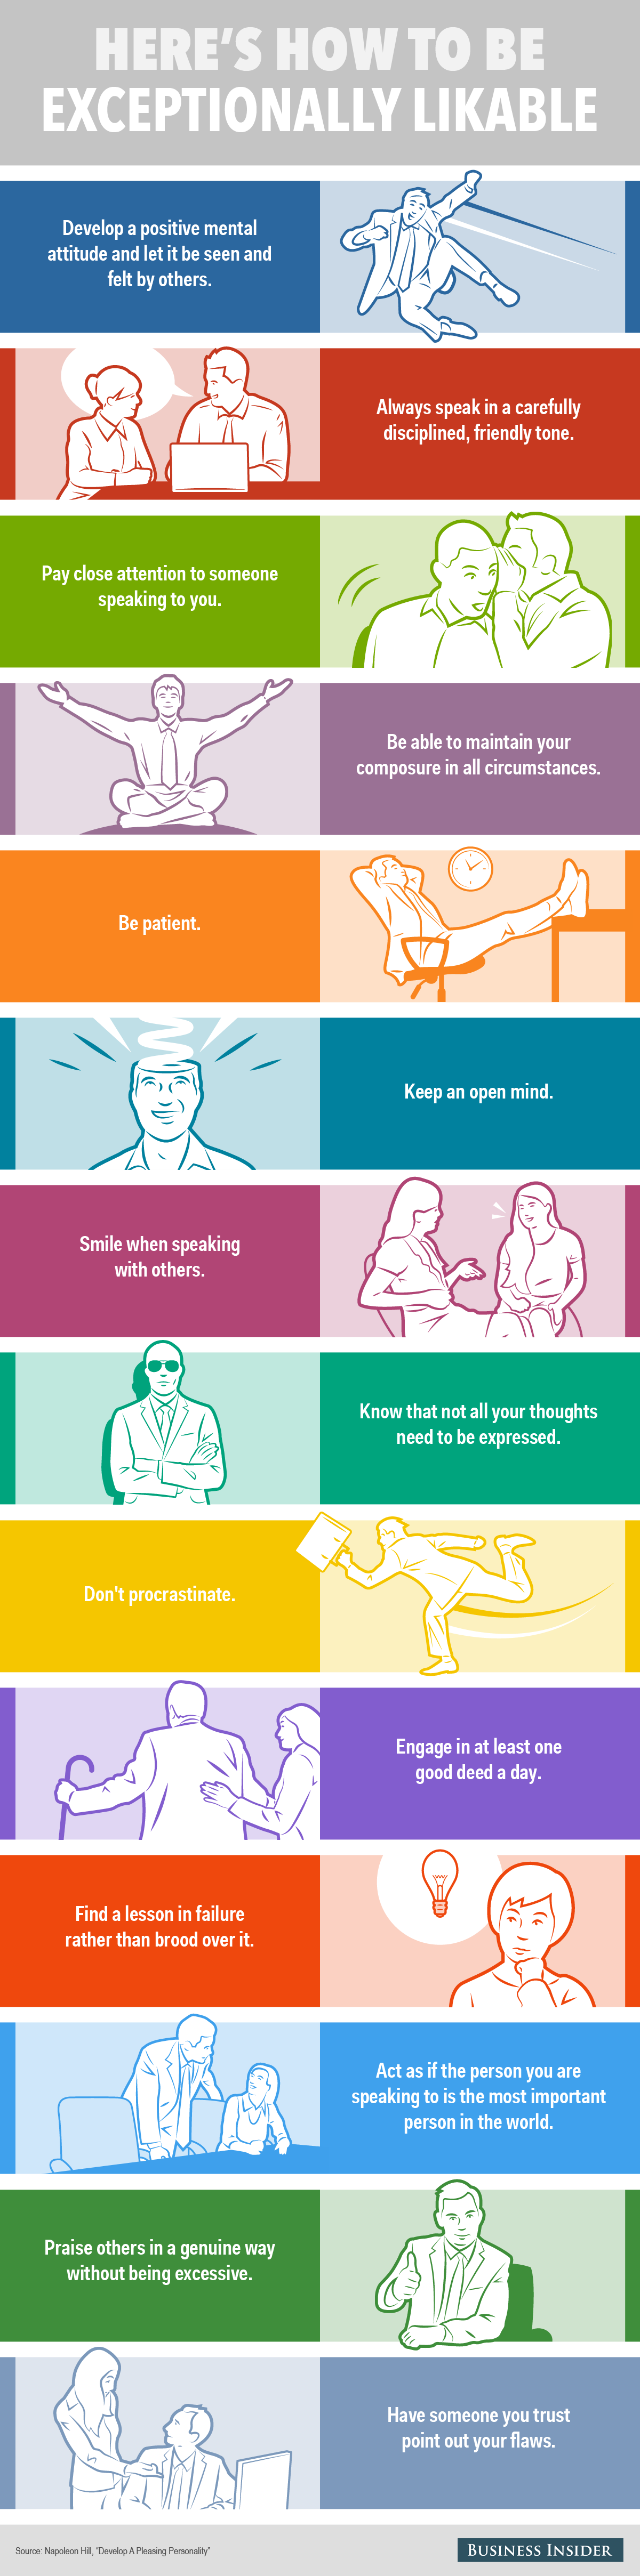 Infographic: 14 Habits Of Exceptionally Likable People ...